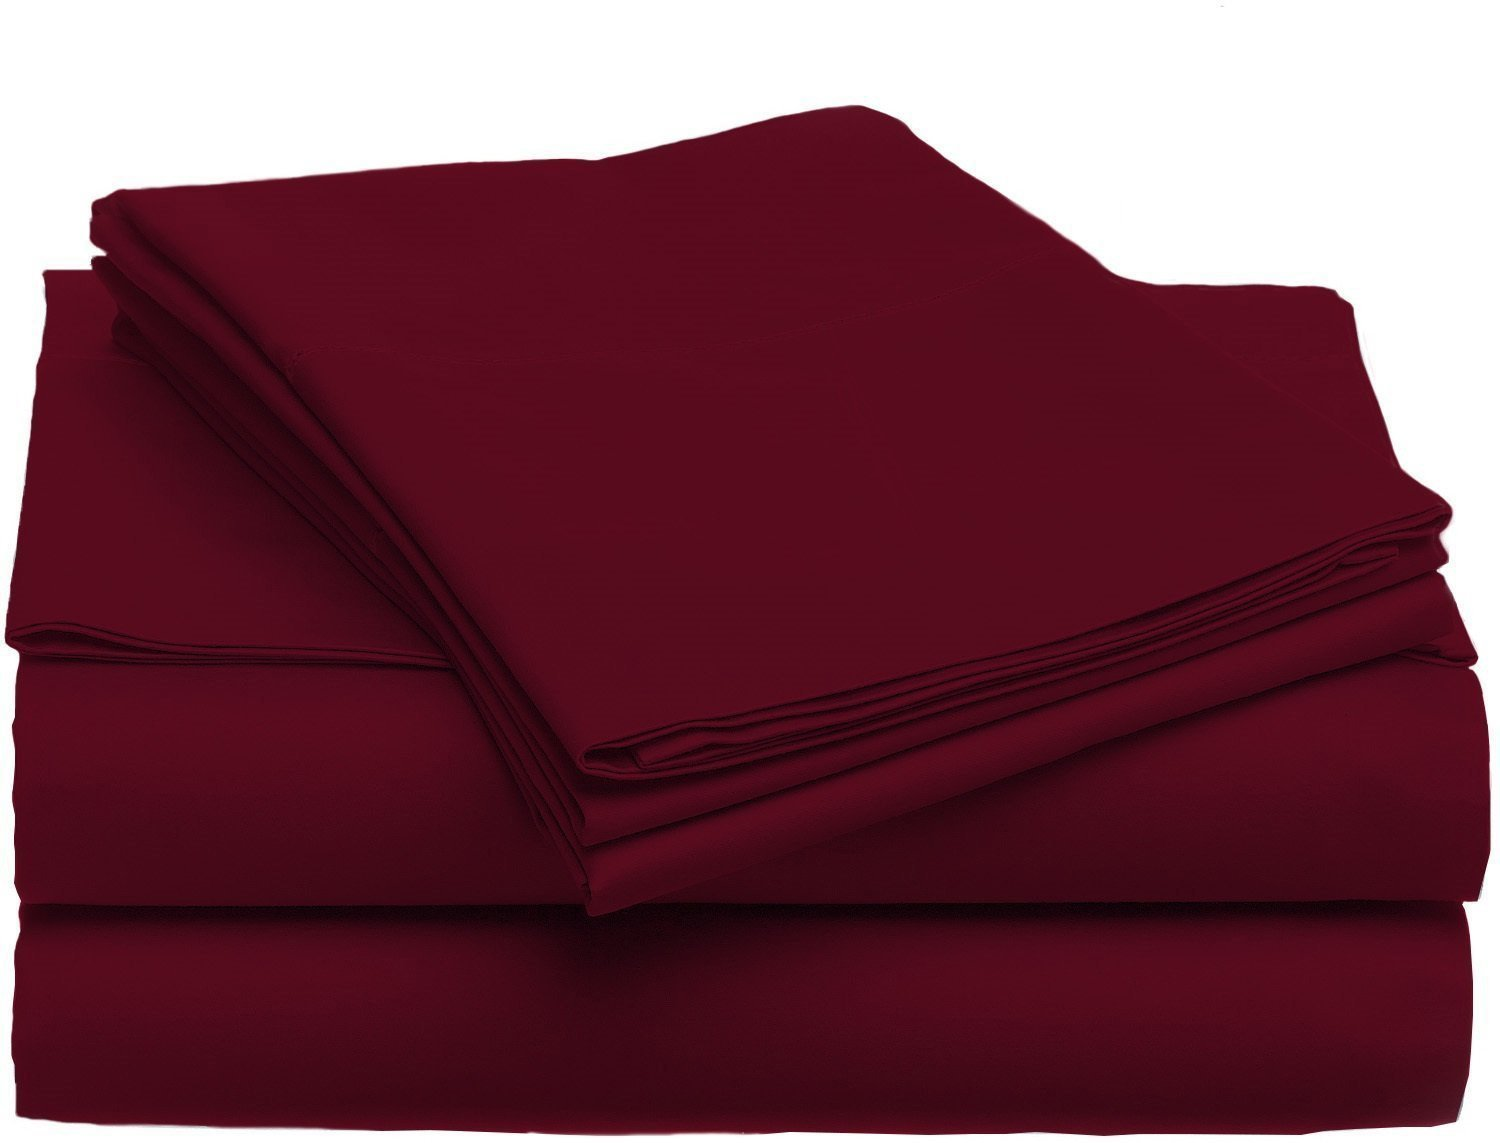 Luxury-Home-Super-Soft-1600-Series-Double-Brushed-6-Pcs-Bed-Sheets-Set thumbnail 9